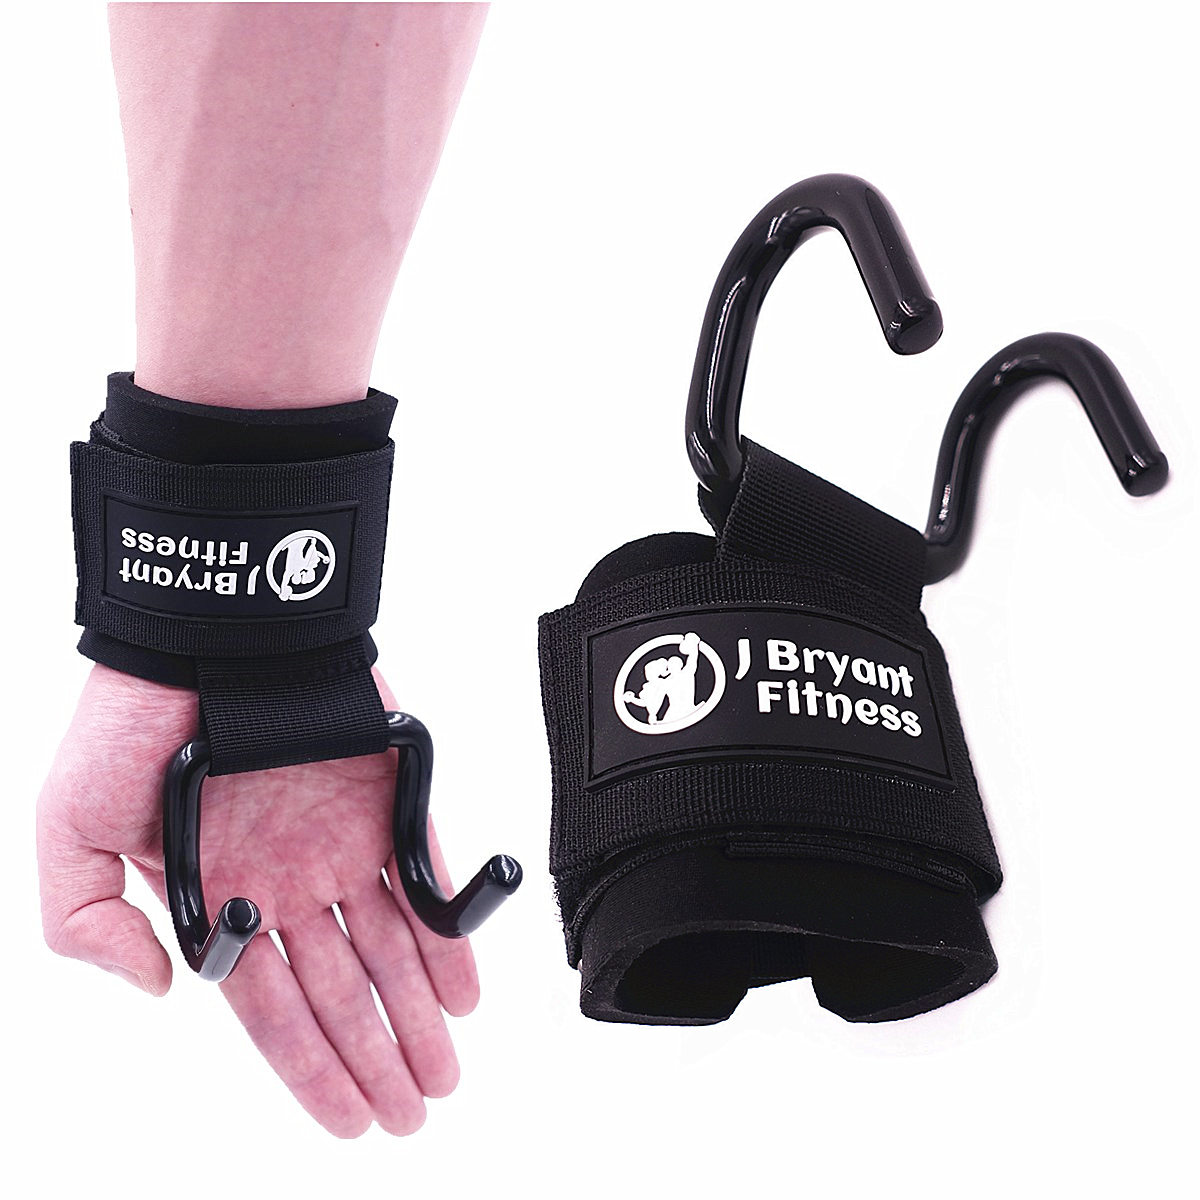 1 Pair Steel Weightlifting Hook Adjustable Fitness Wrist Support Straps Hook Gym For Arm Strength Training